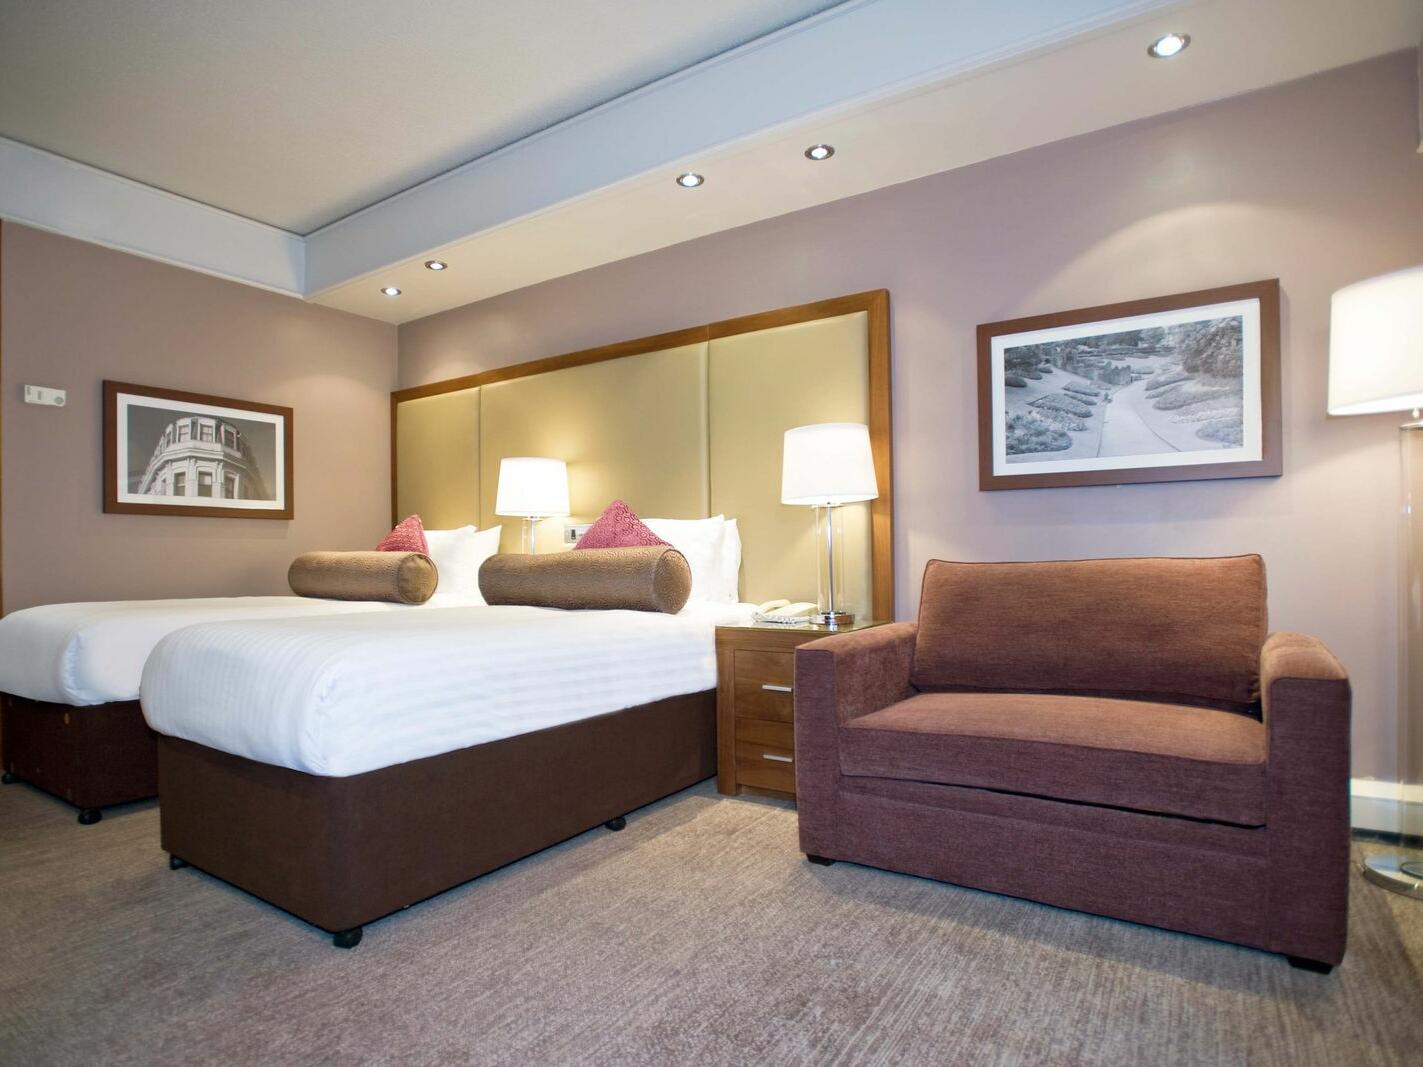 The Triple Room at Sandman Signature London Gatwick Hotel with two single beds (with premium pillow-top) and a one seater sofa on the side